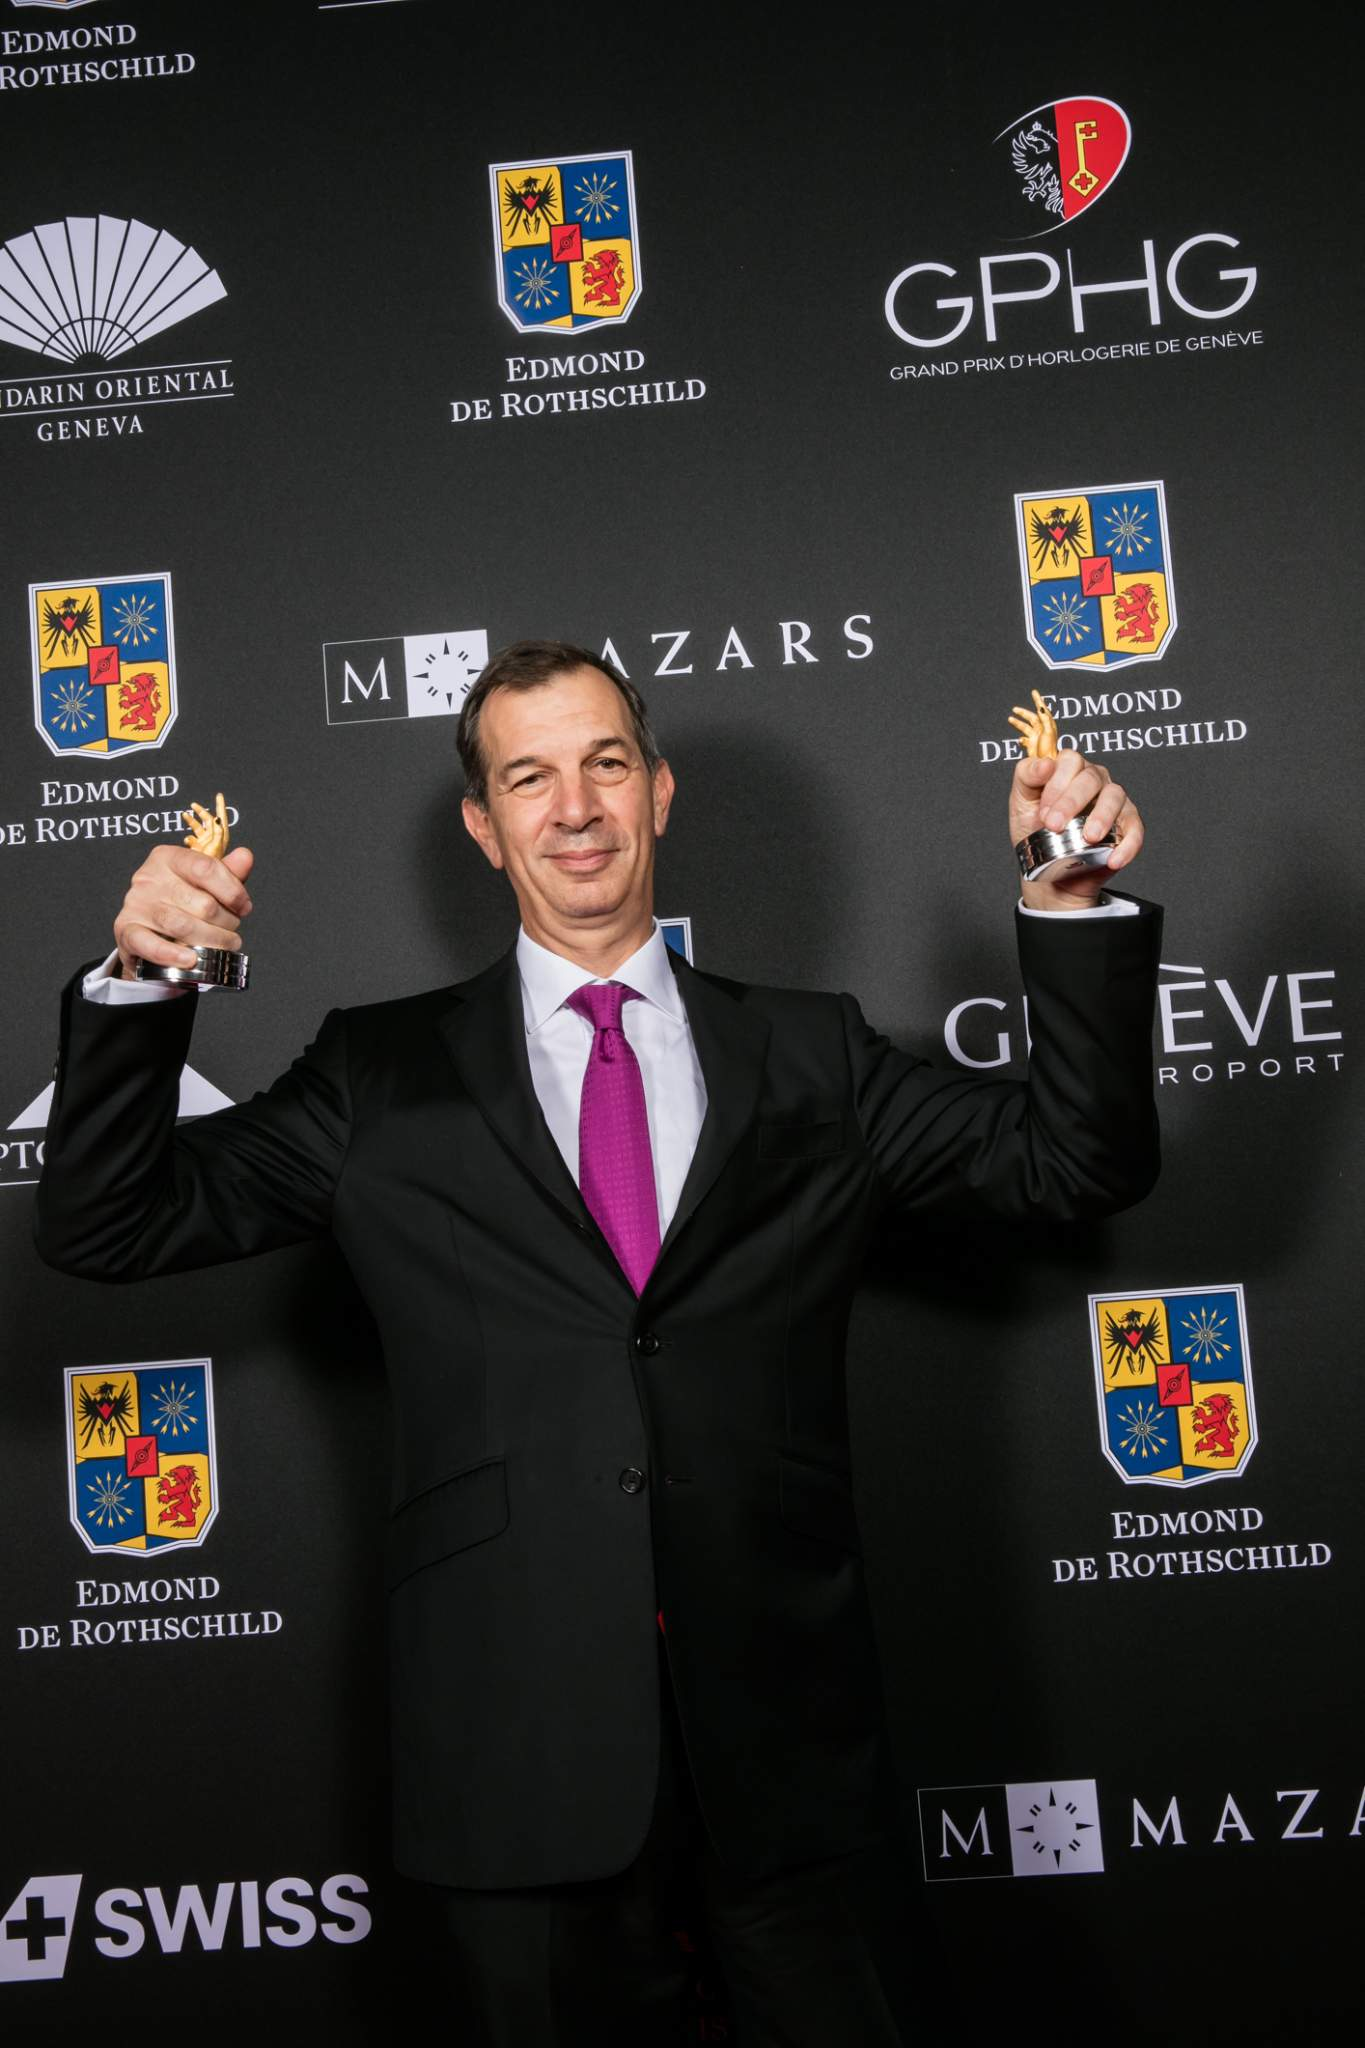 Philippe Léopold-Metzger (CEO of Piaget, winner of the Chronograph Watch Prize 2015 and the Revival Watch Prize 2015)